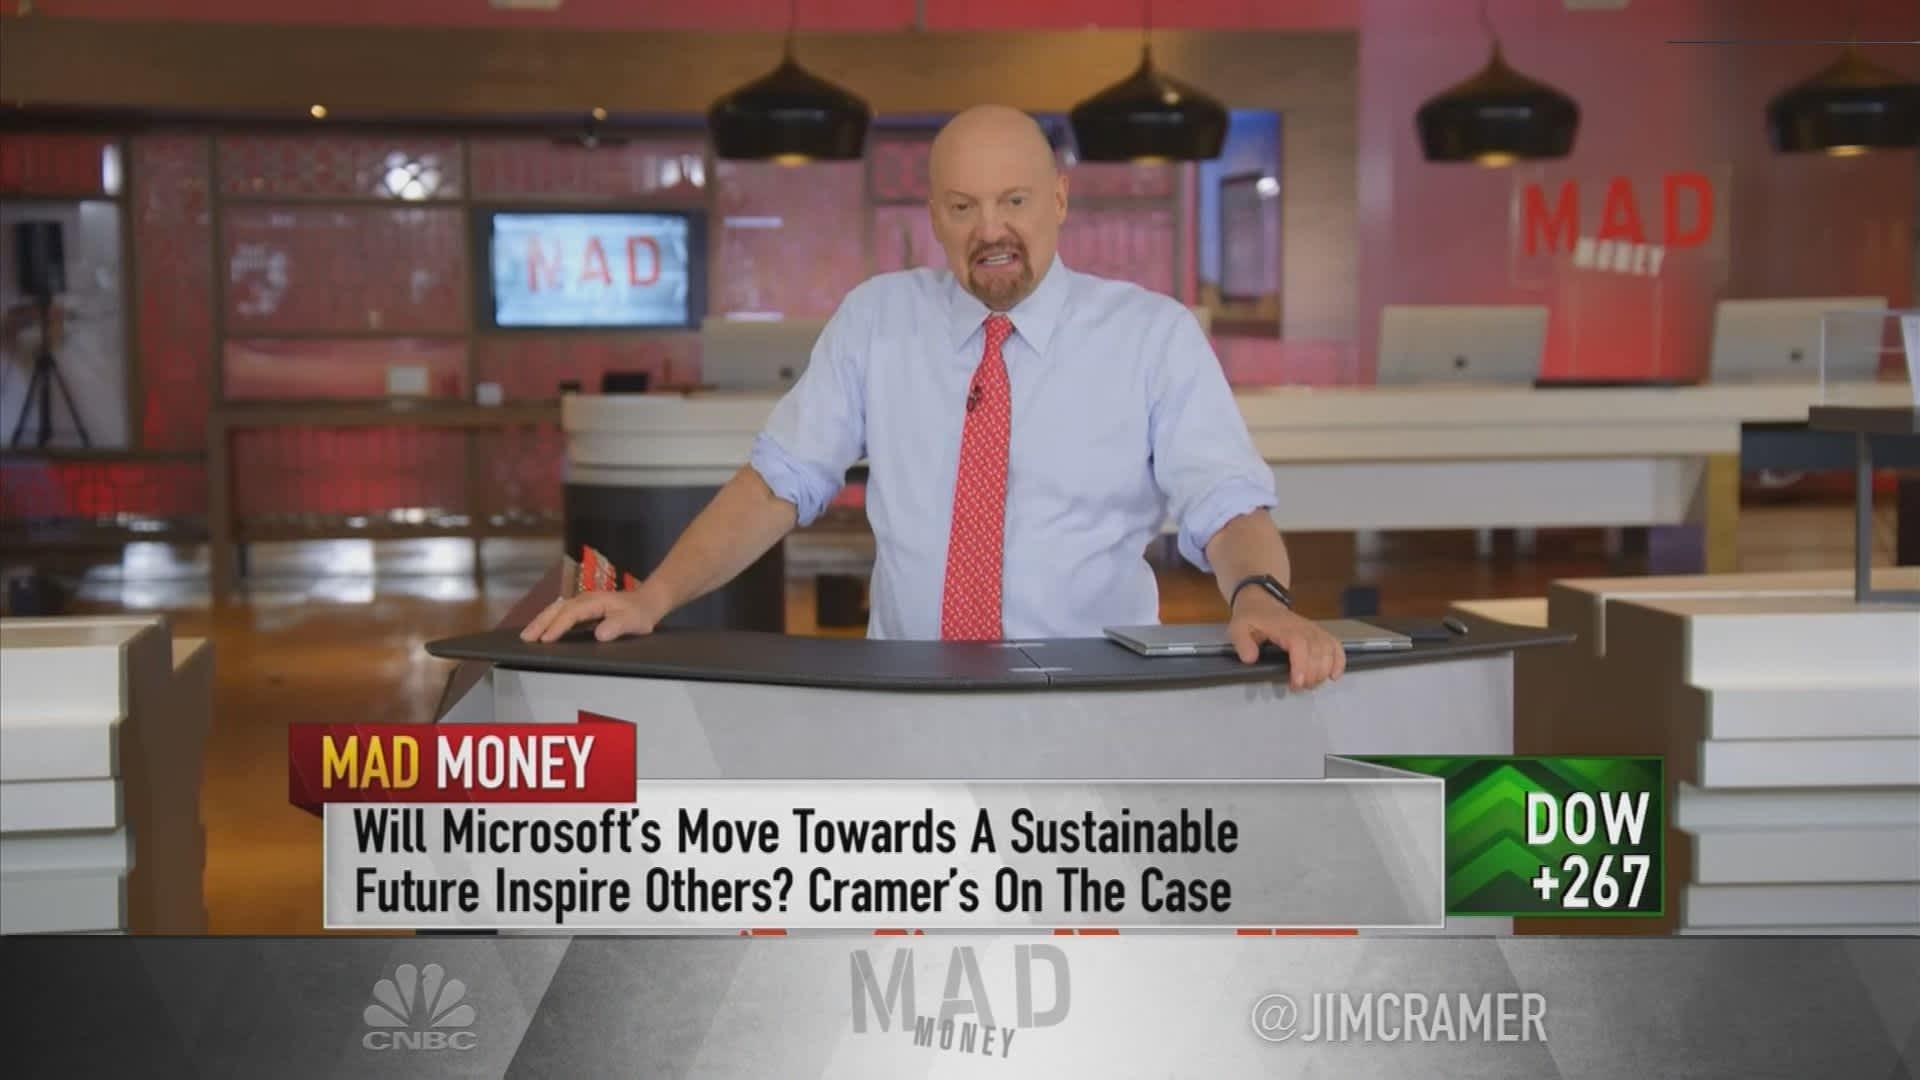 Jim Cramer: Microsoft's attempt to fight climate change matters